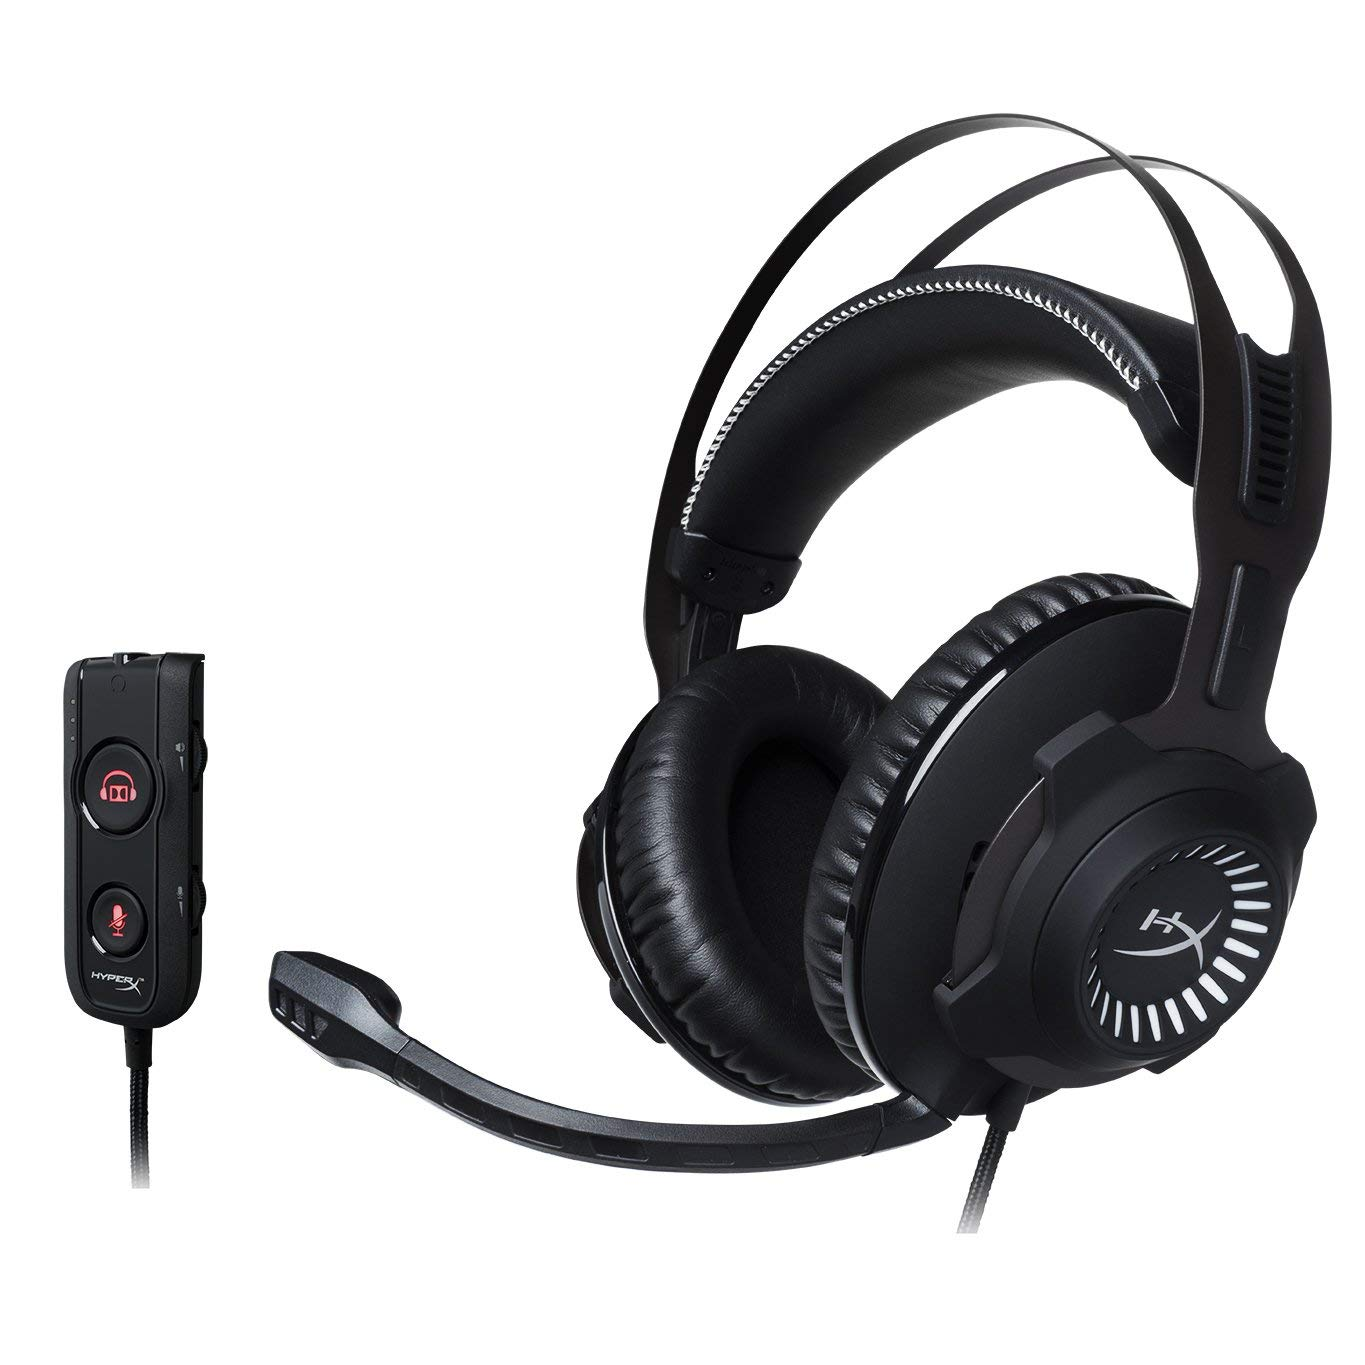 The Best 7.1 Gaming Headsets (Reviewed December 2019) 4